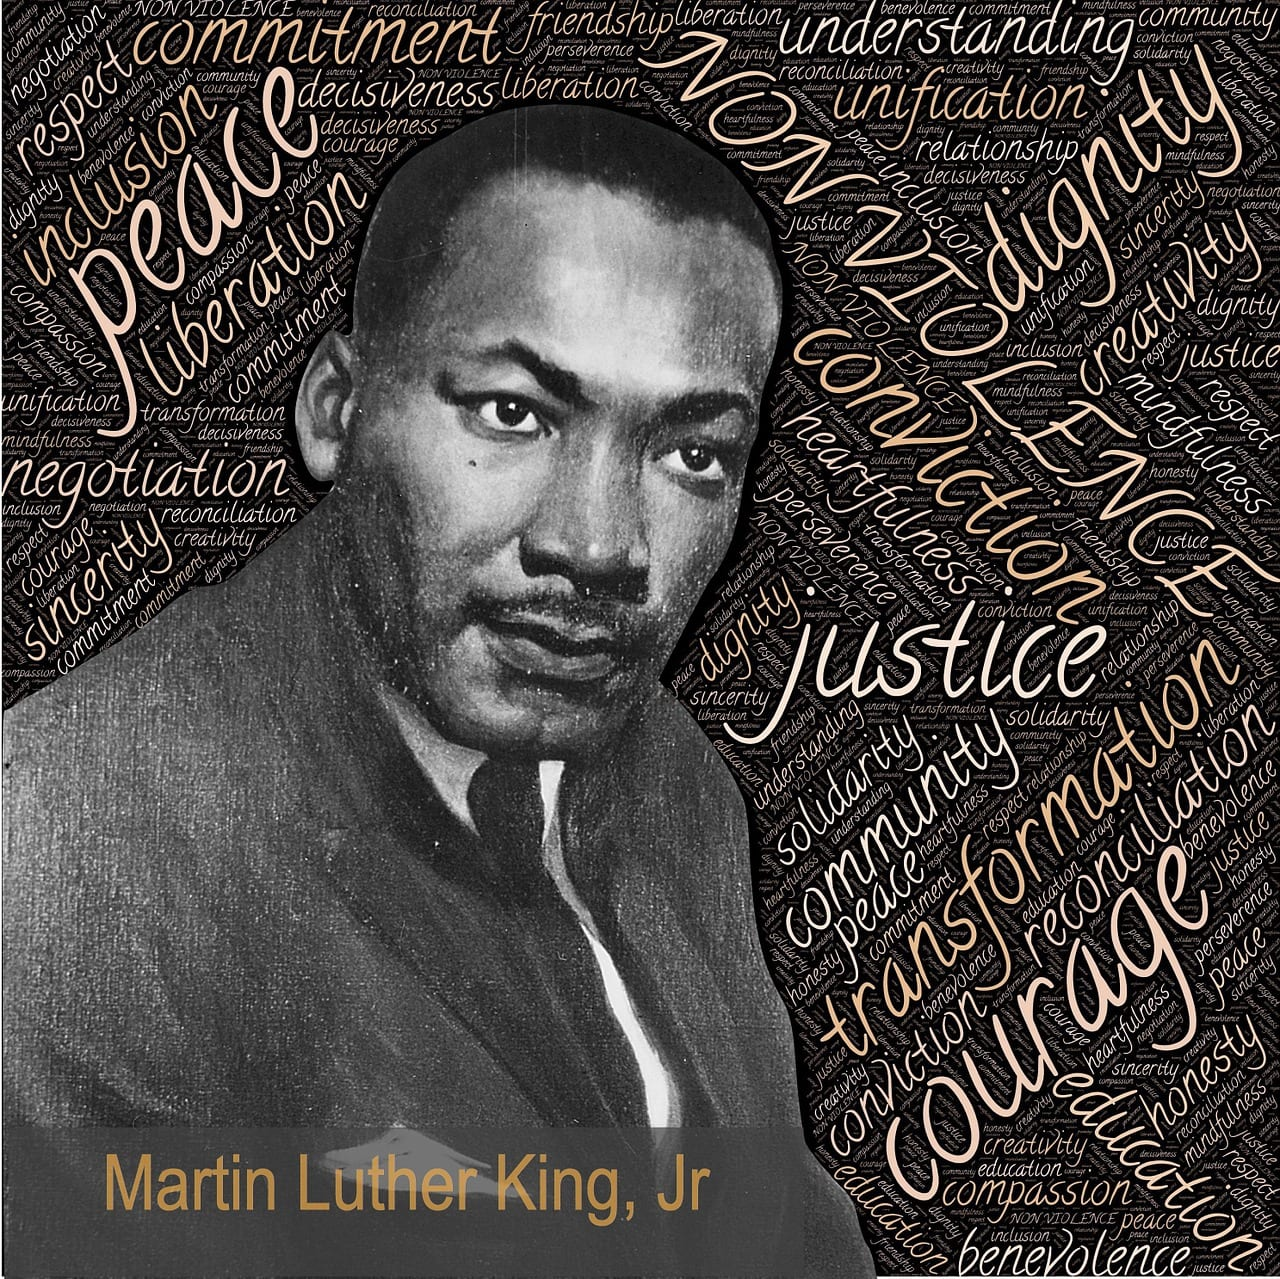 New Martin Luther King, Jr. Resources